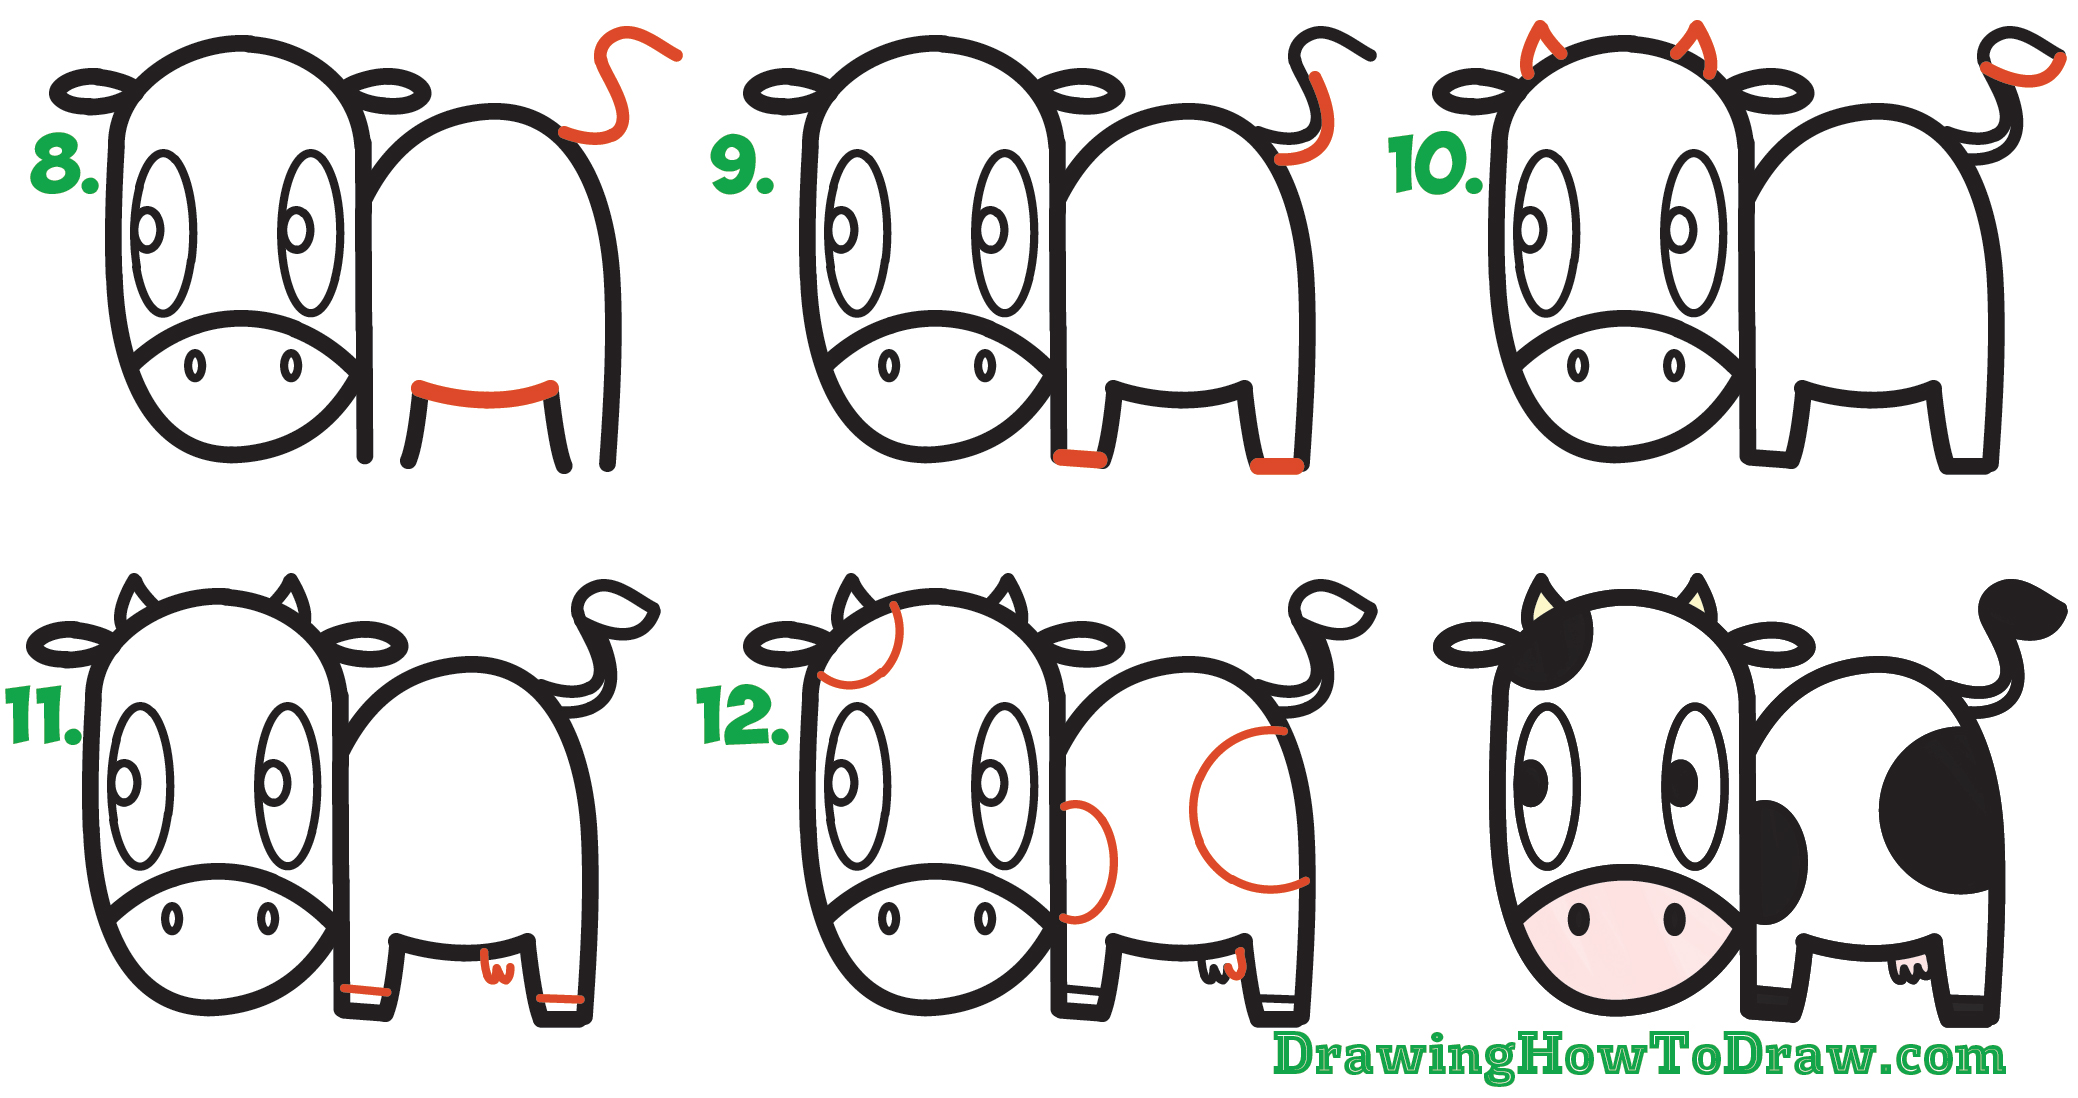 Learn How to Draw a Cute Cartoon Kawaii Cow Simple Steps Drawing Lesson for Children & Beginners